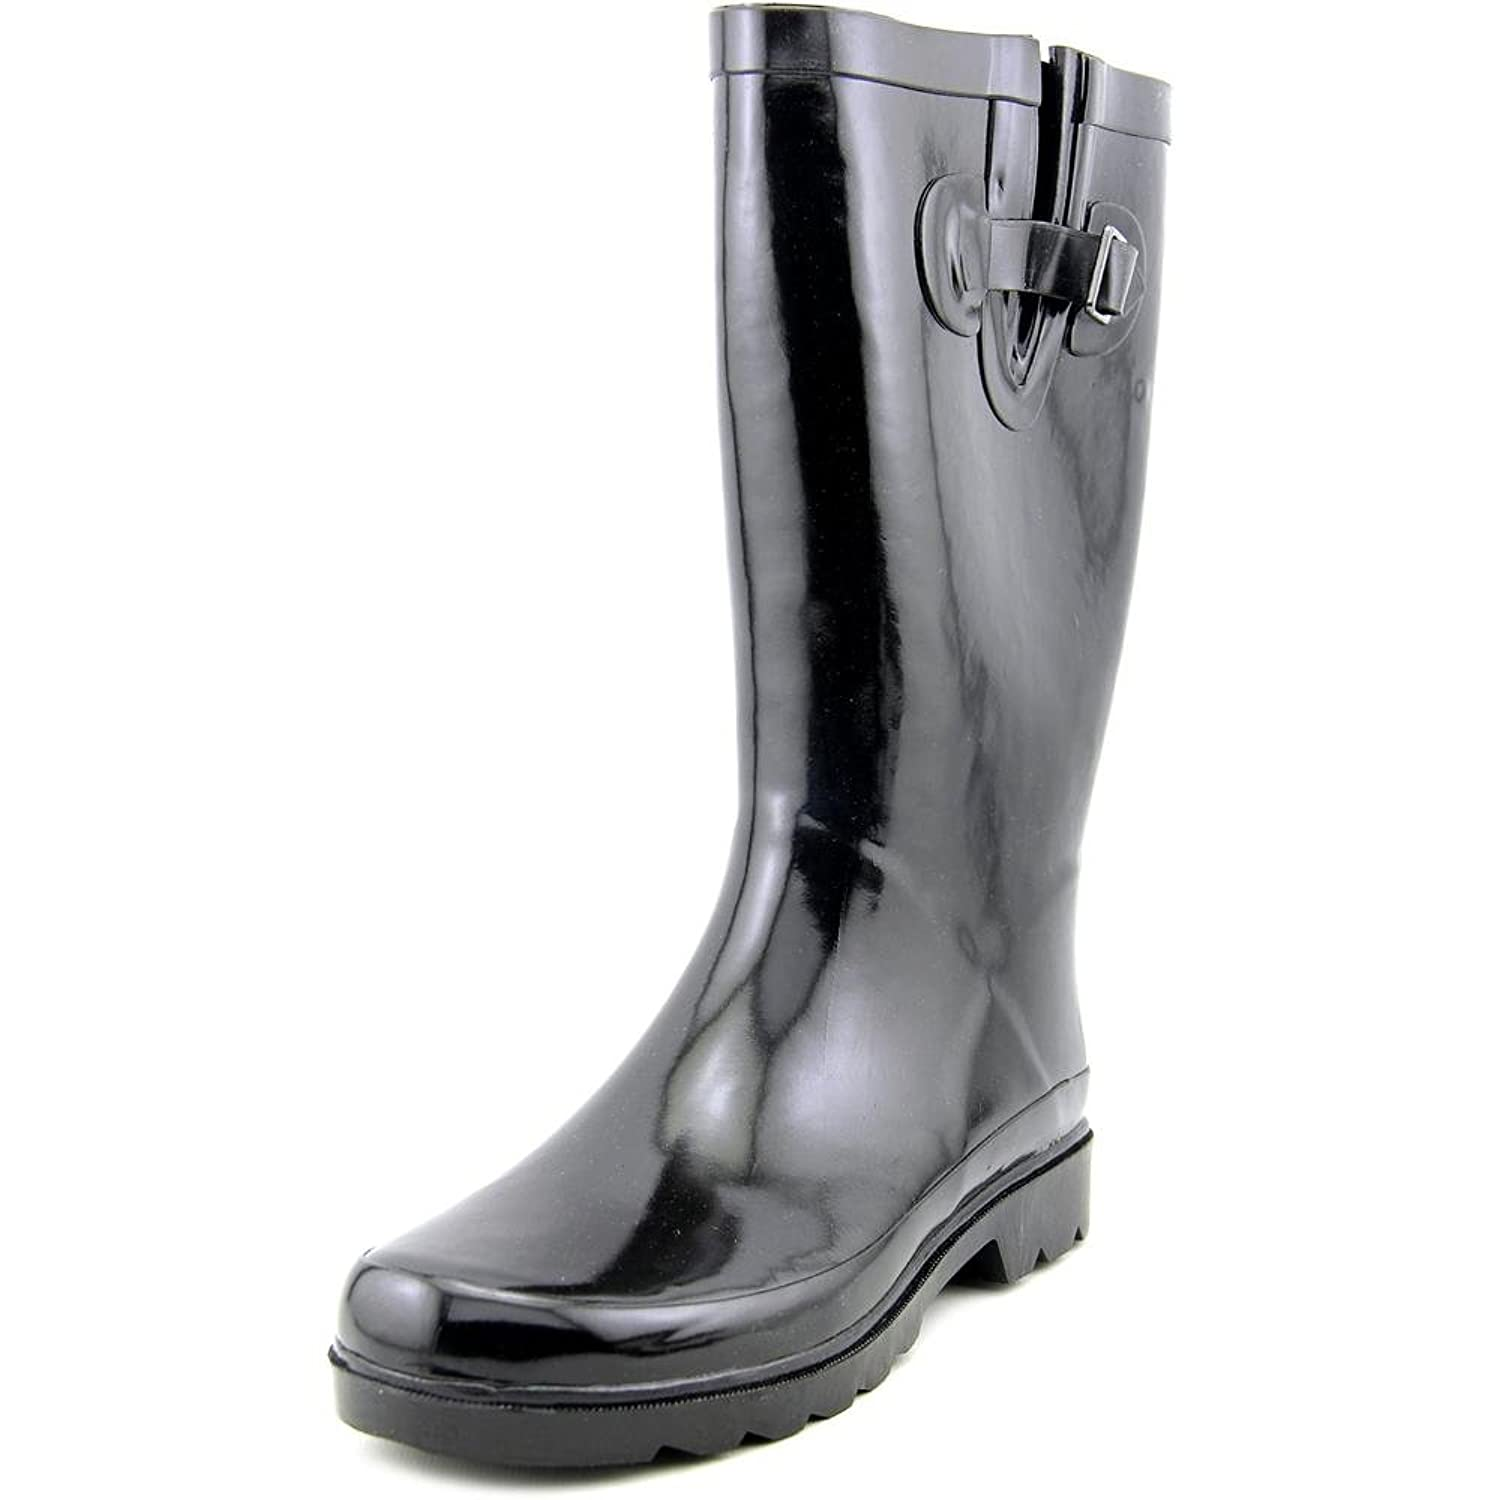 143 Girl Tallis Women Black Rain Boot